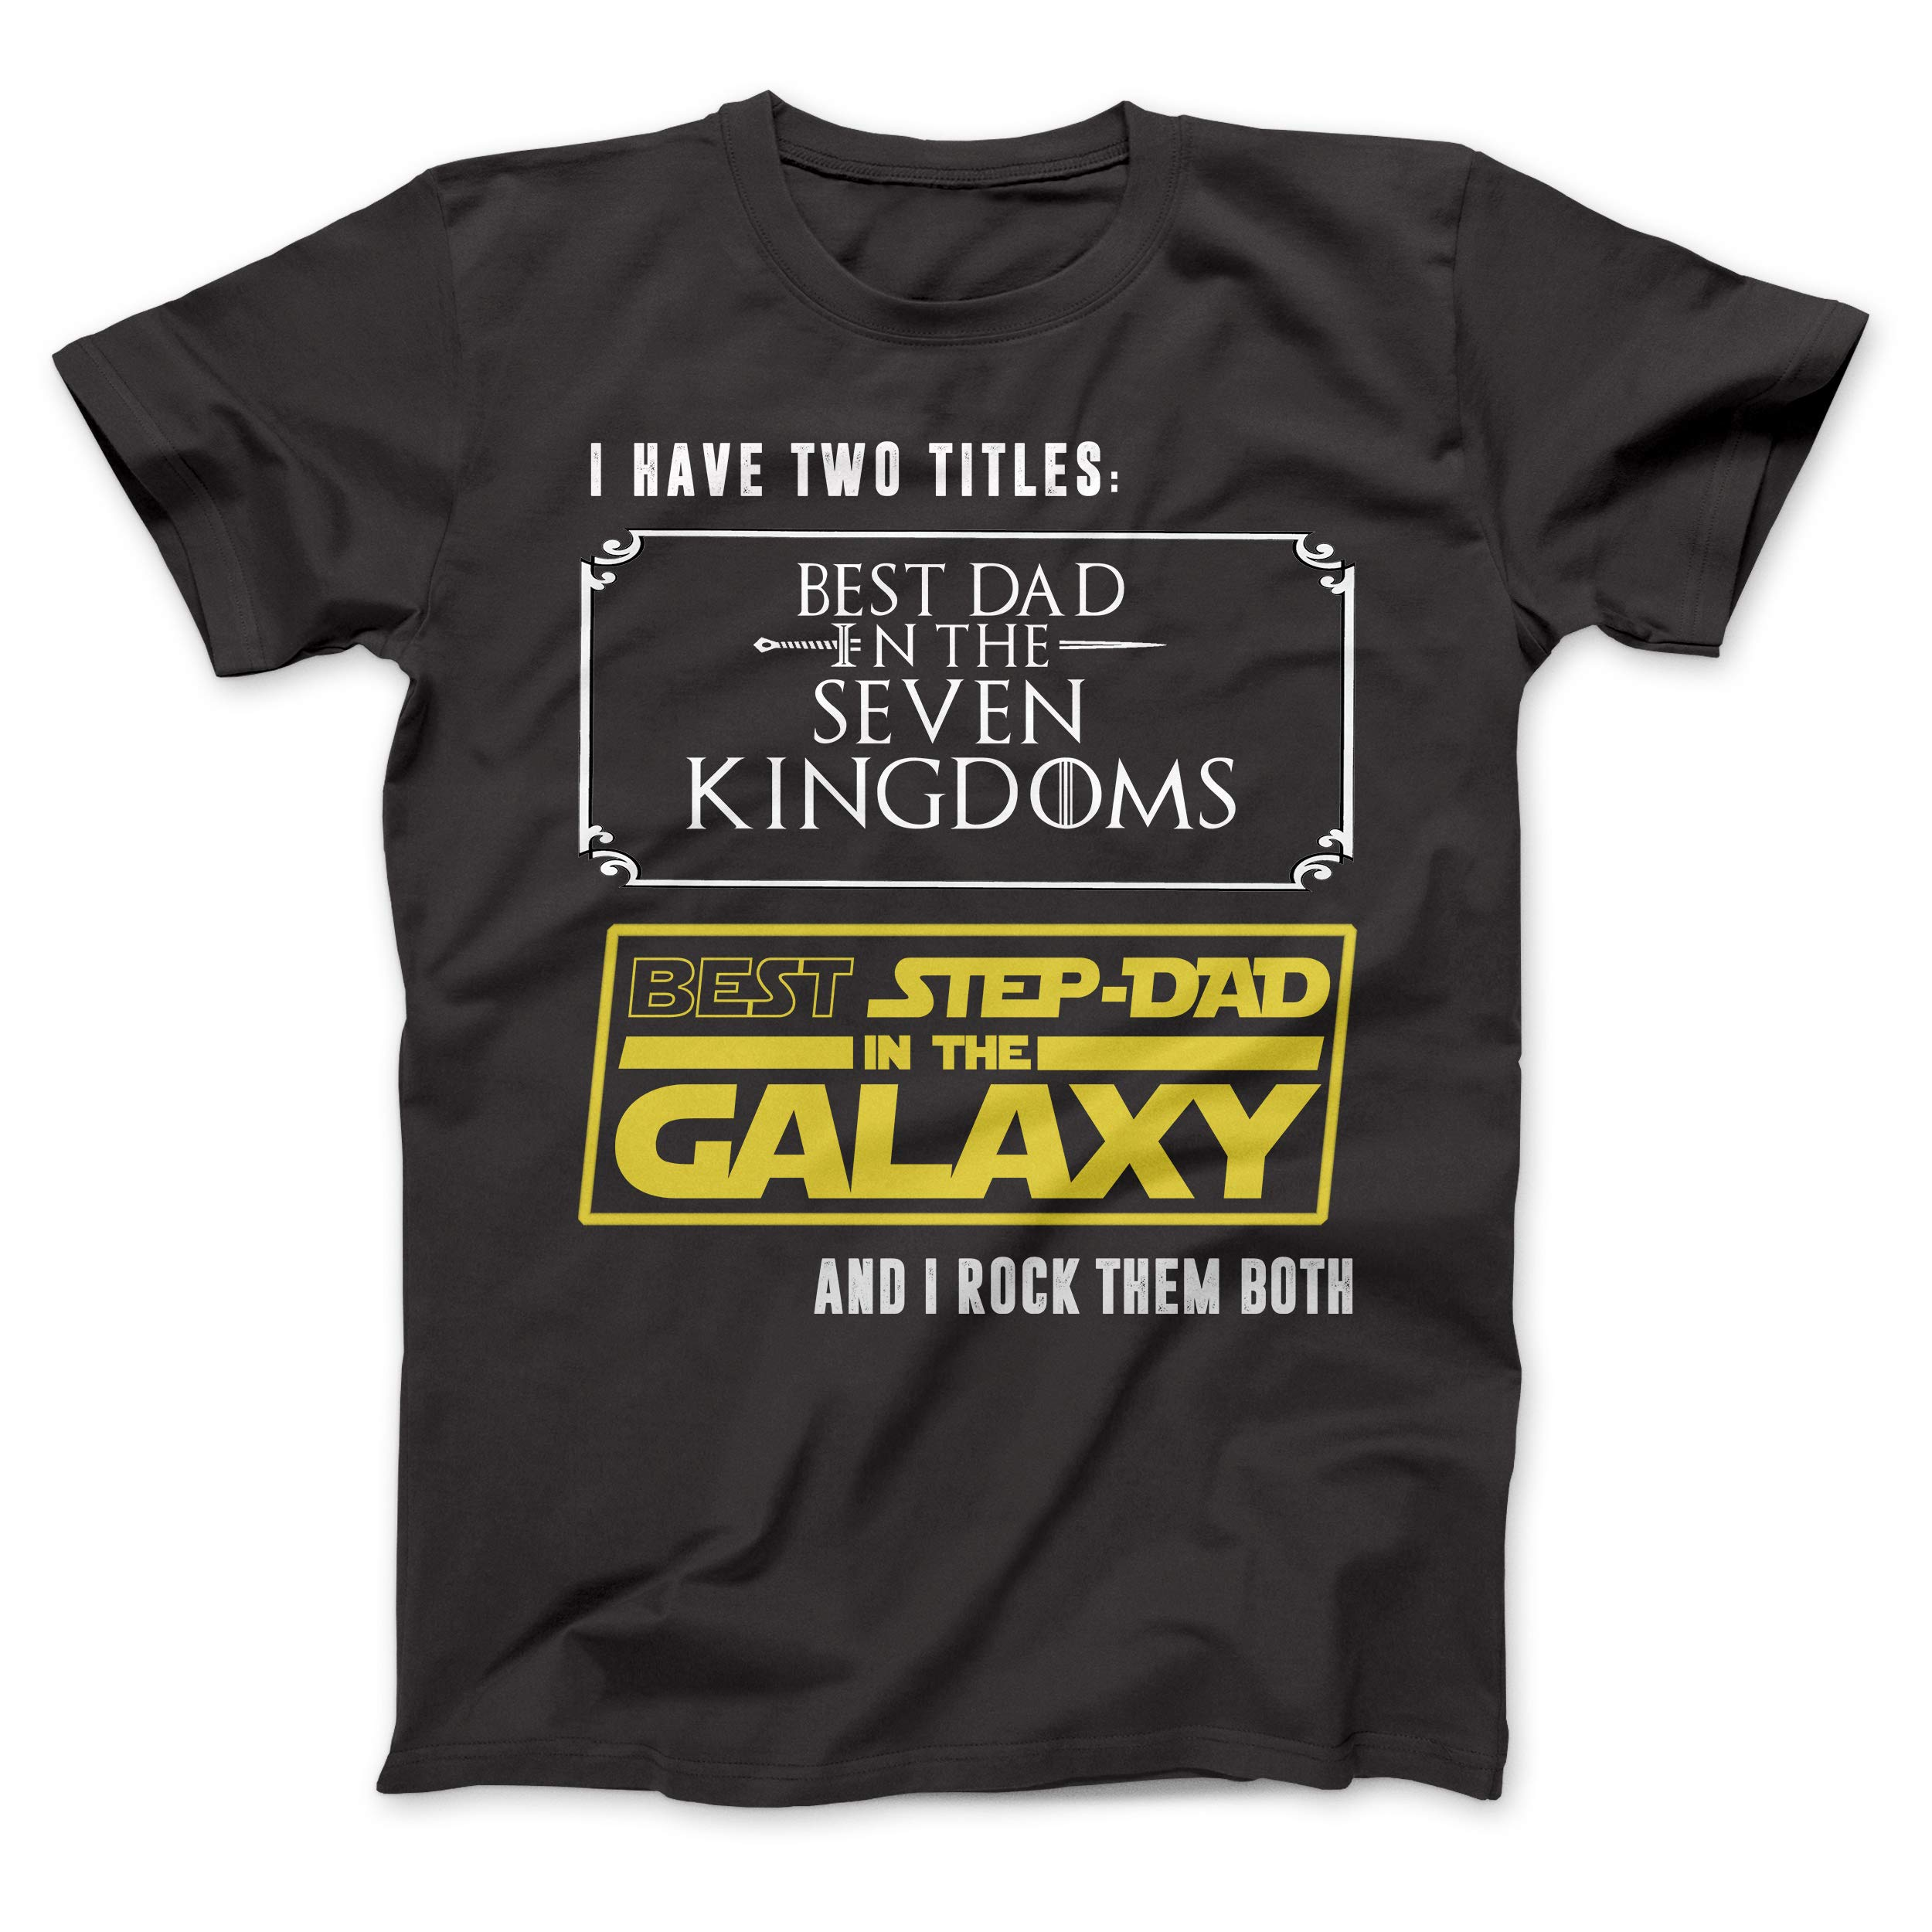 I Have Two Titles Best Dad In The Seven Kingdoms And Best Step Dad In The Galaxy Shirt 337